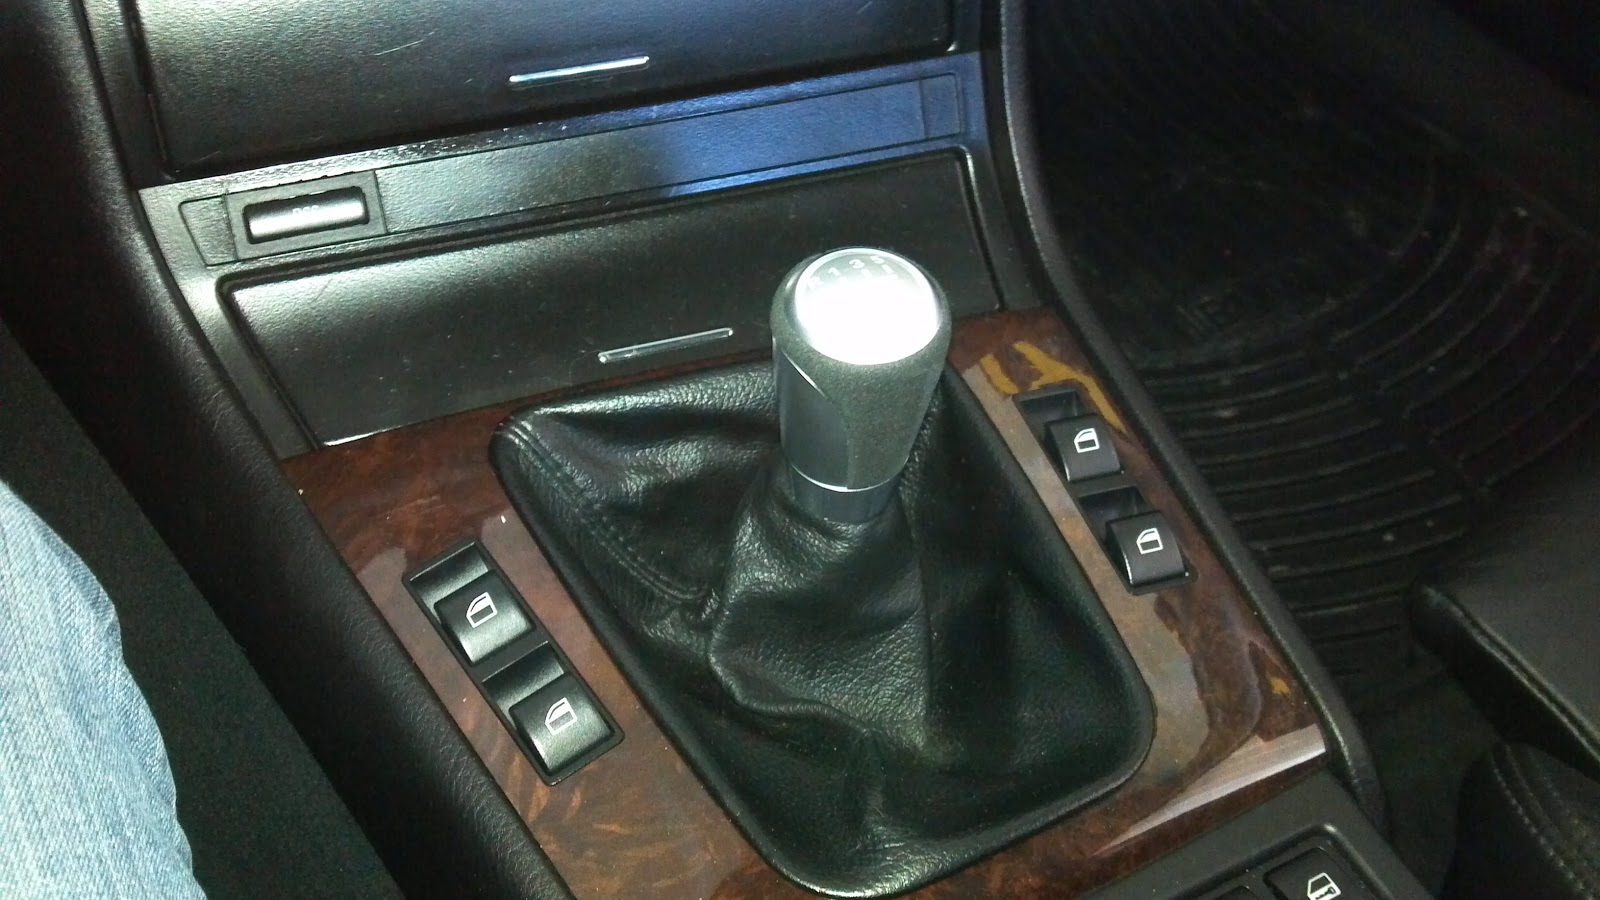 I Am Jack S E46 Battle Of The Shift Knobs Bmw